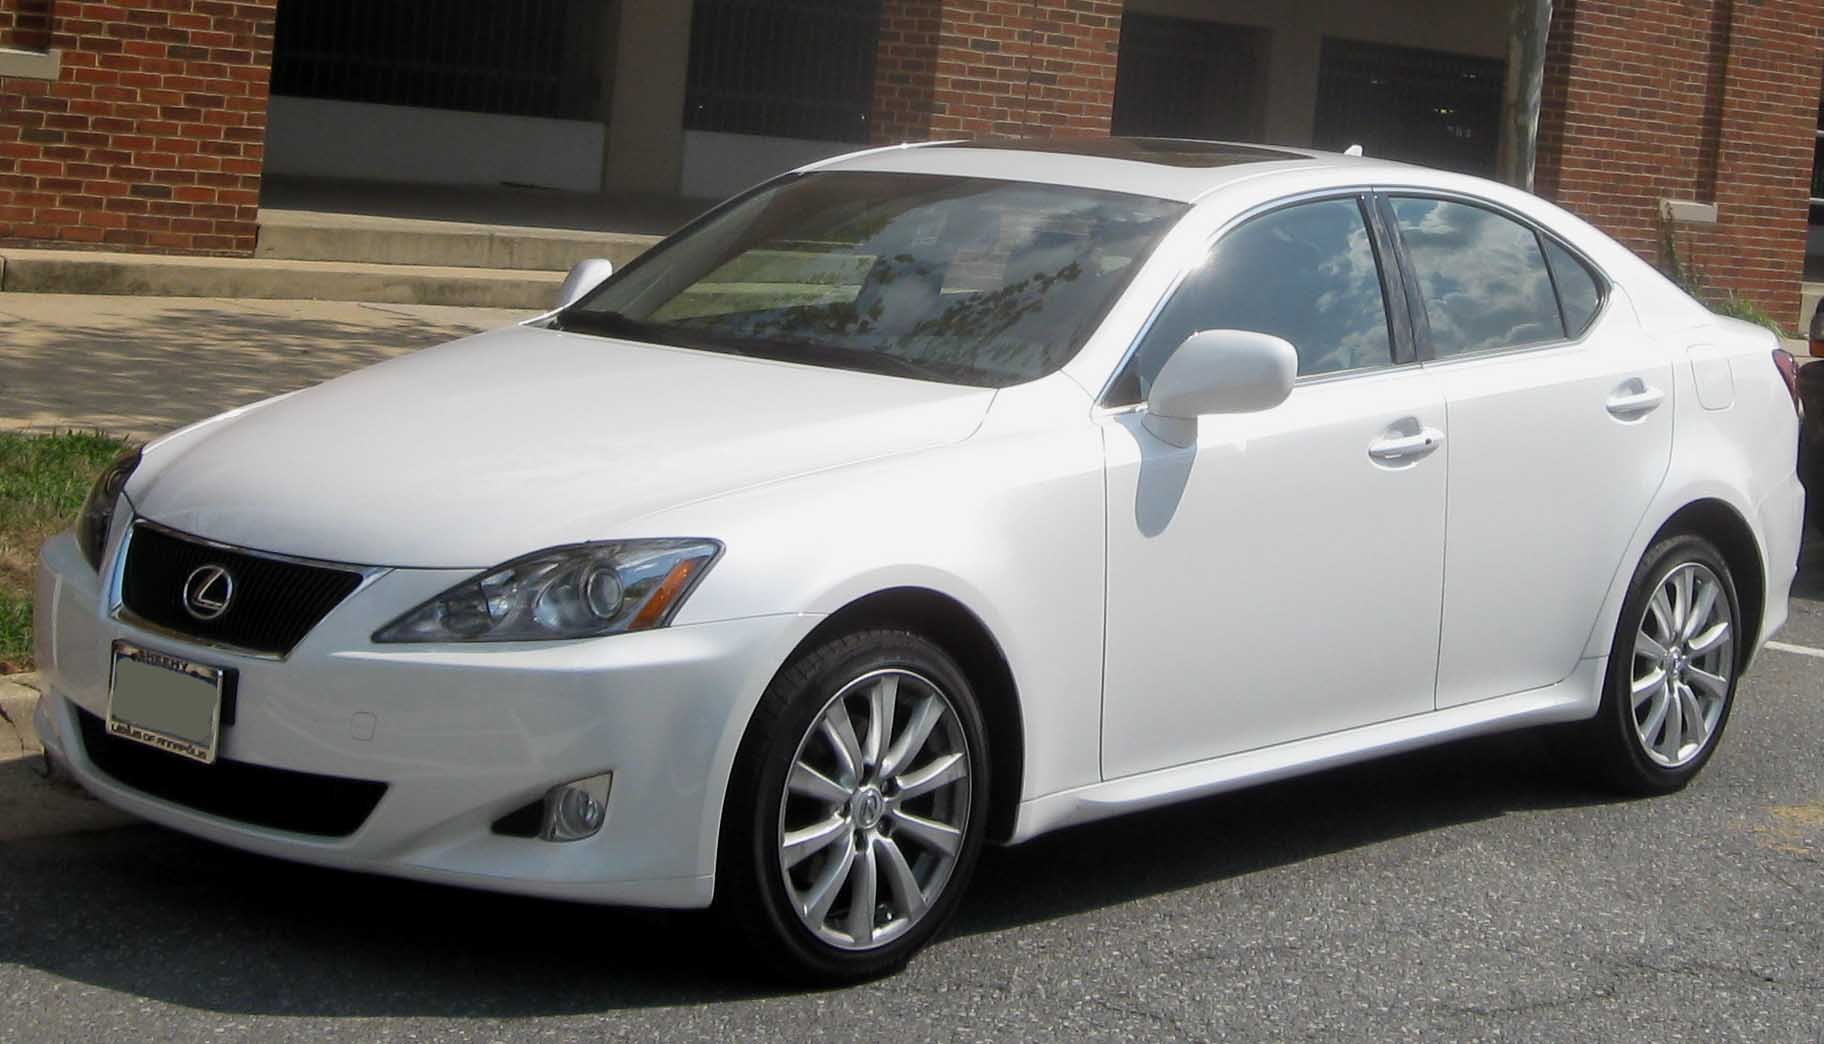 File:Lexus IS250.jpg - Wikimedia Commons